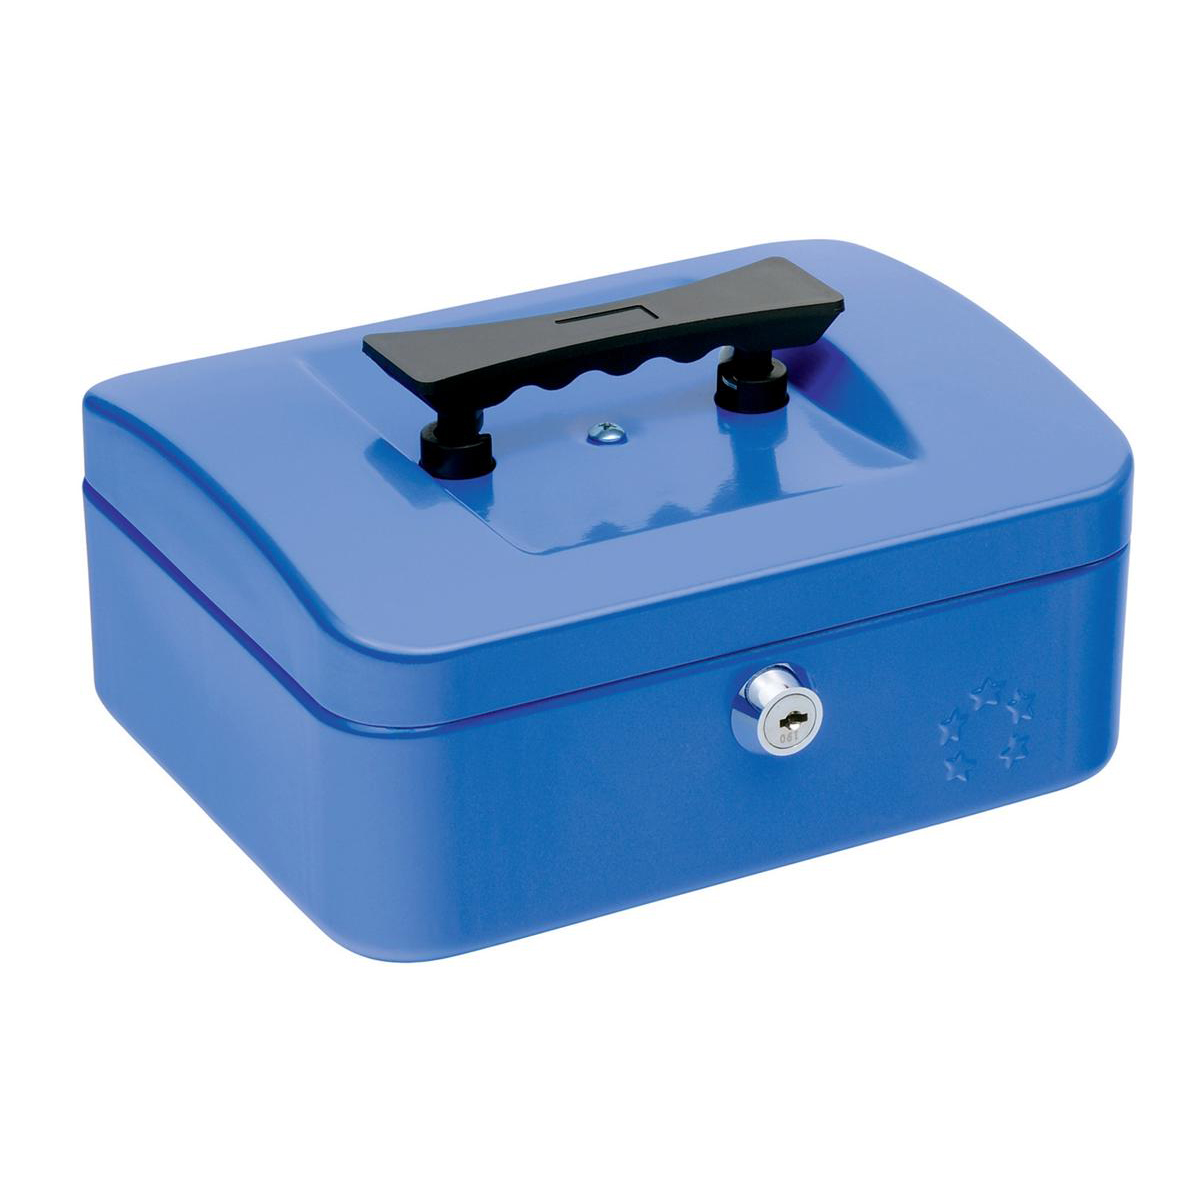 Image for 5 Star Facilities Cash Box with 5-compartment Tray Steel Spring Lock 8 Inch W200xD160xH70mm Blue